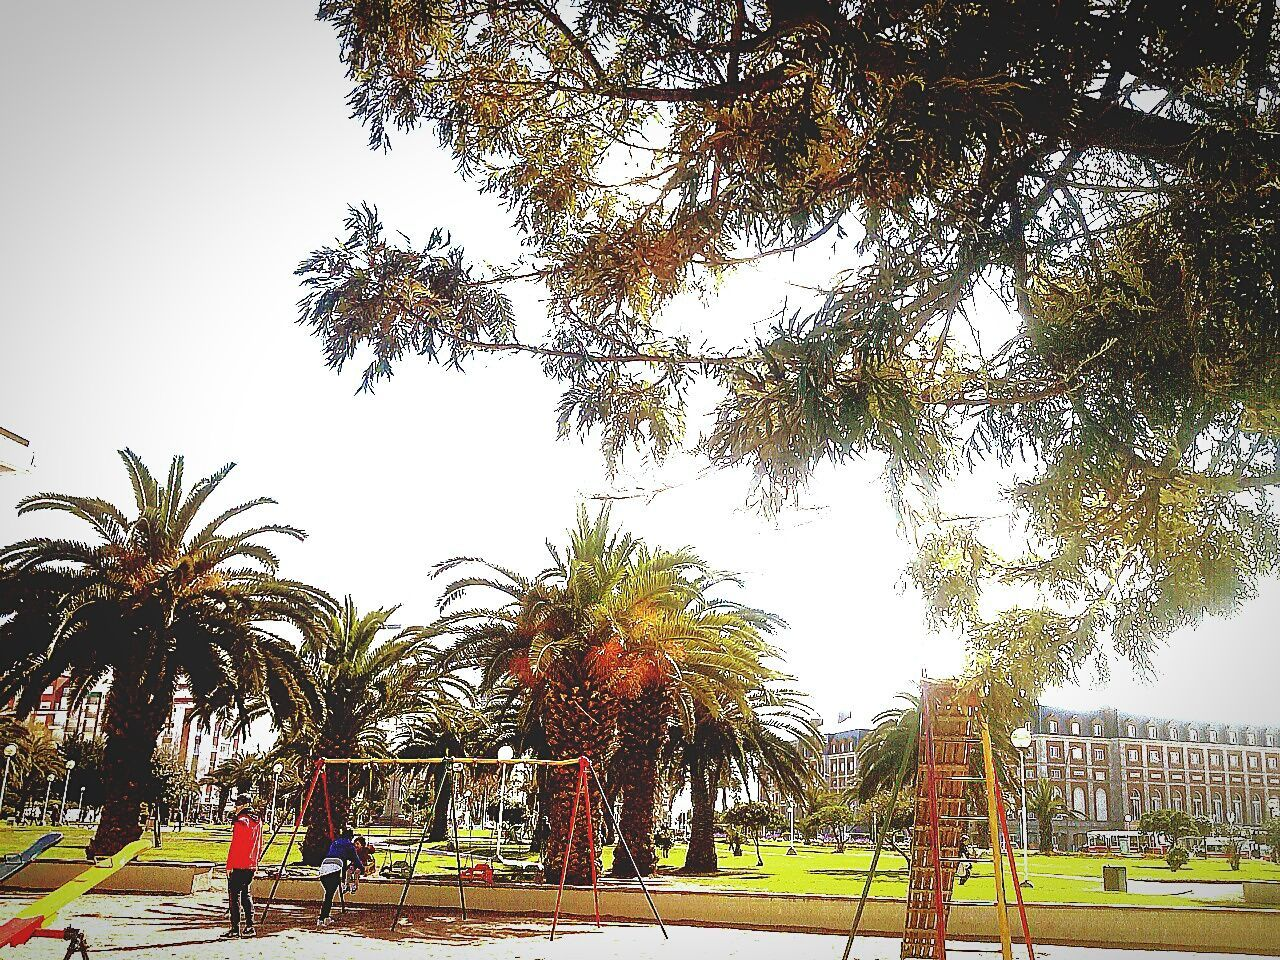 tree, day, real people, park - man made space, growth, palm tree, outdoors, men, large group of people, sky, clear sky, nature, people